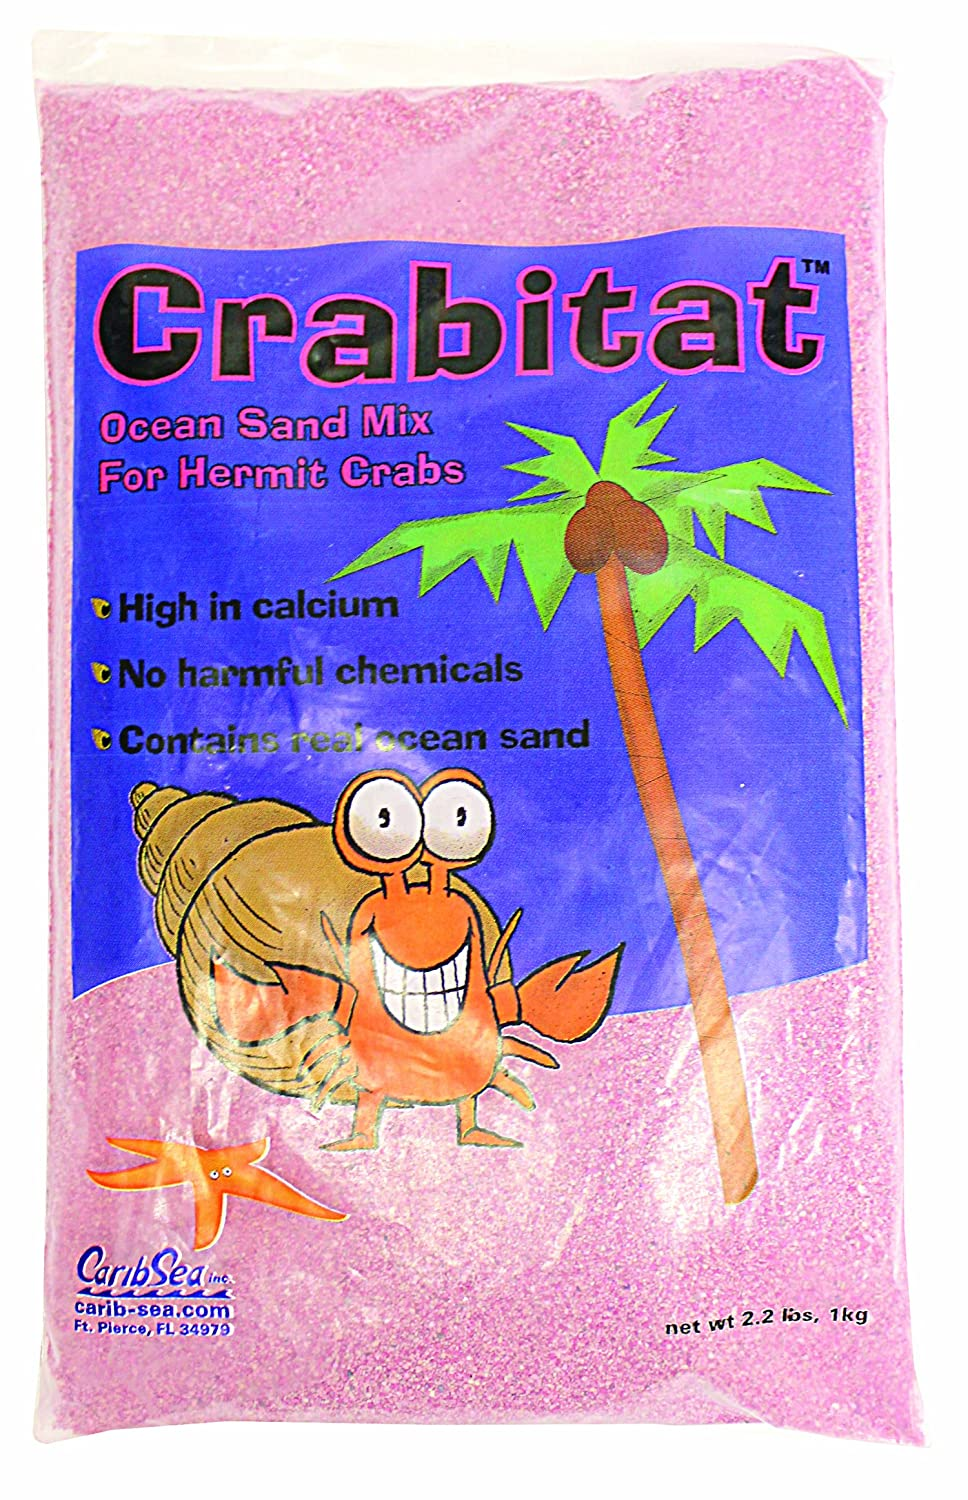 CaribSea Aquatics SCS00606 Crabitat Hermit Crab Sand, 2.2-Pound, Pink TopDawg Pet Supply 008479006066